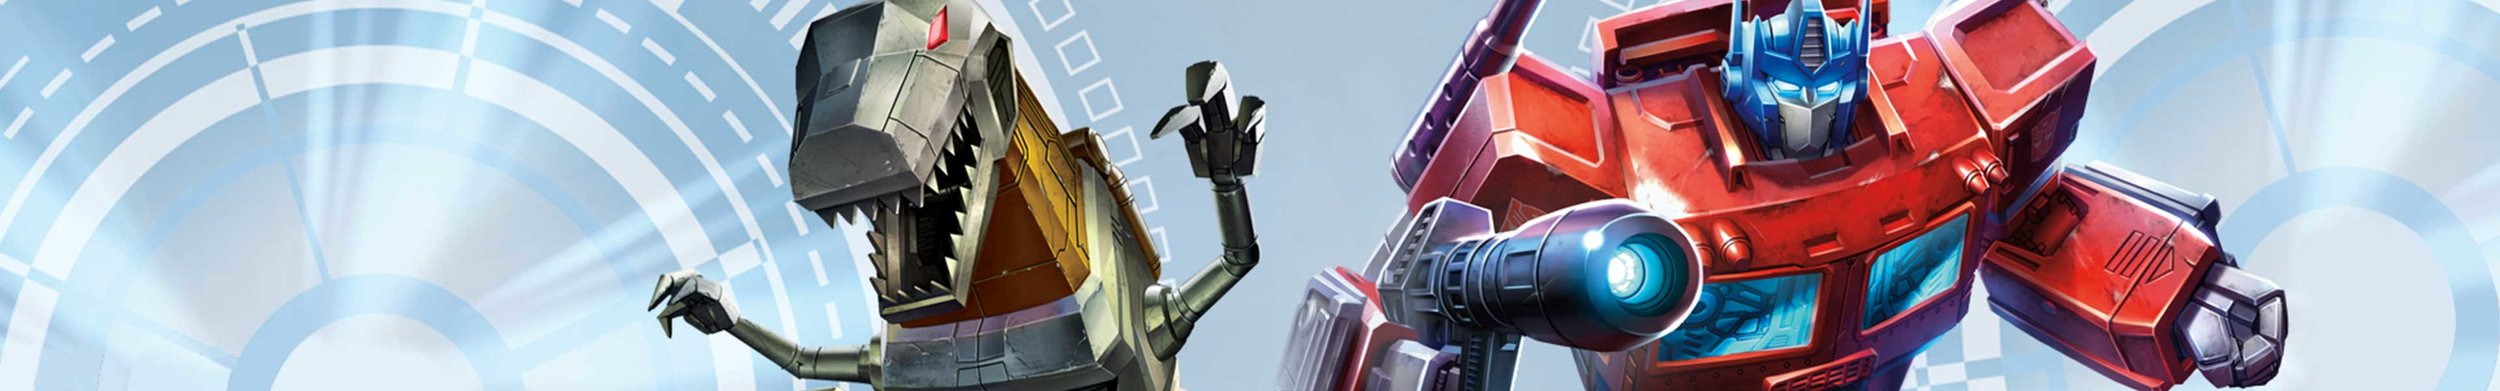 transformers_rise-of-the-combiners_Banner-03.jpg